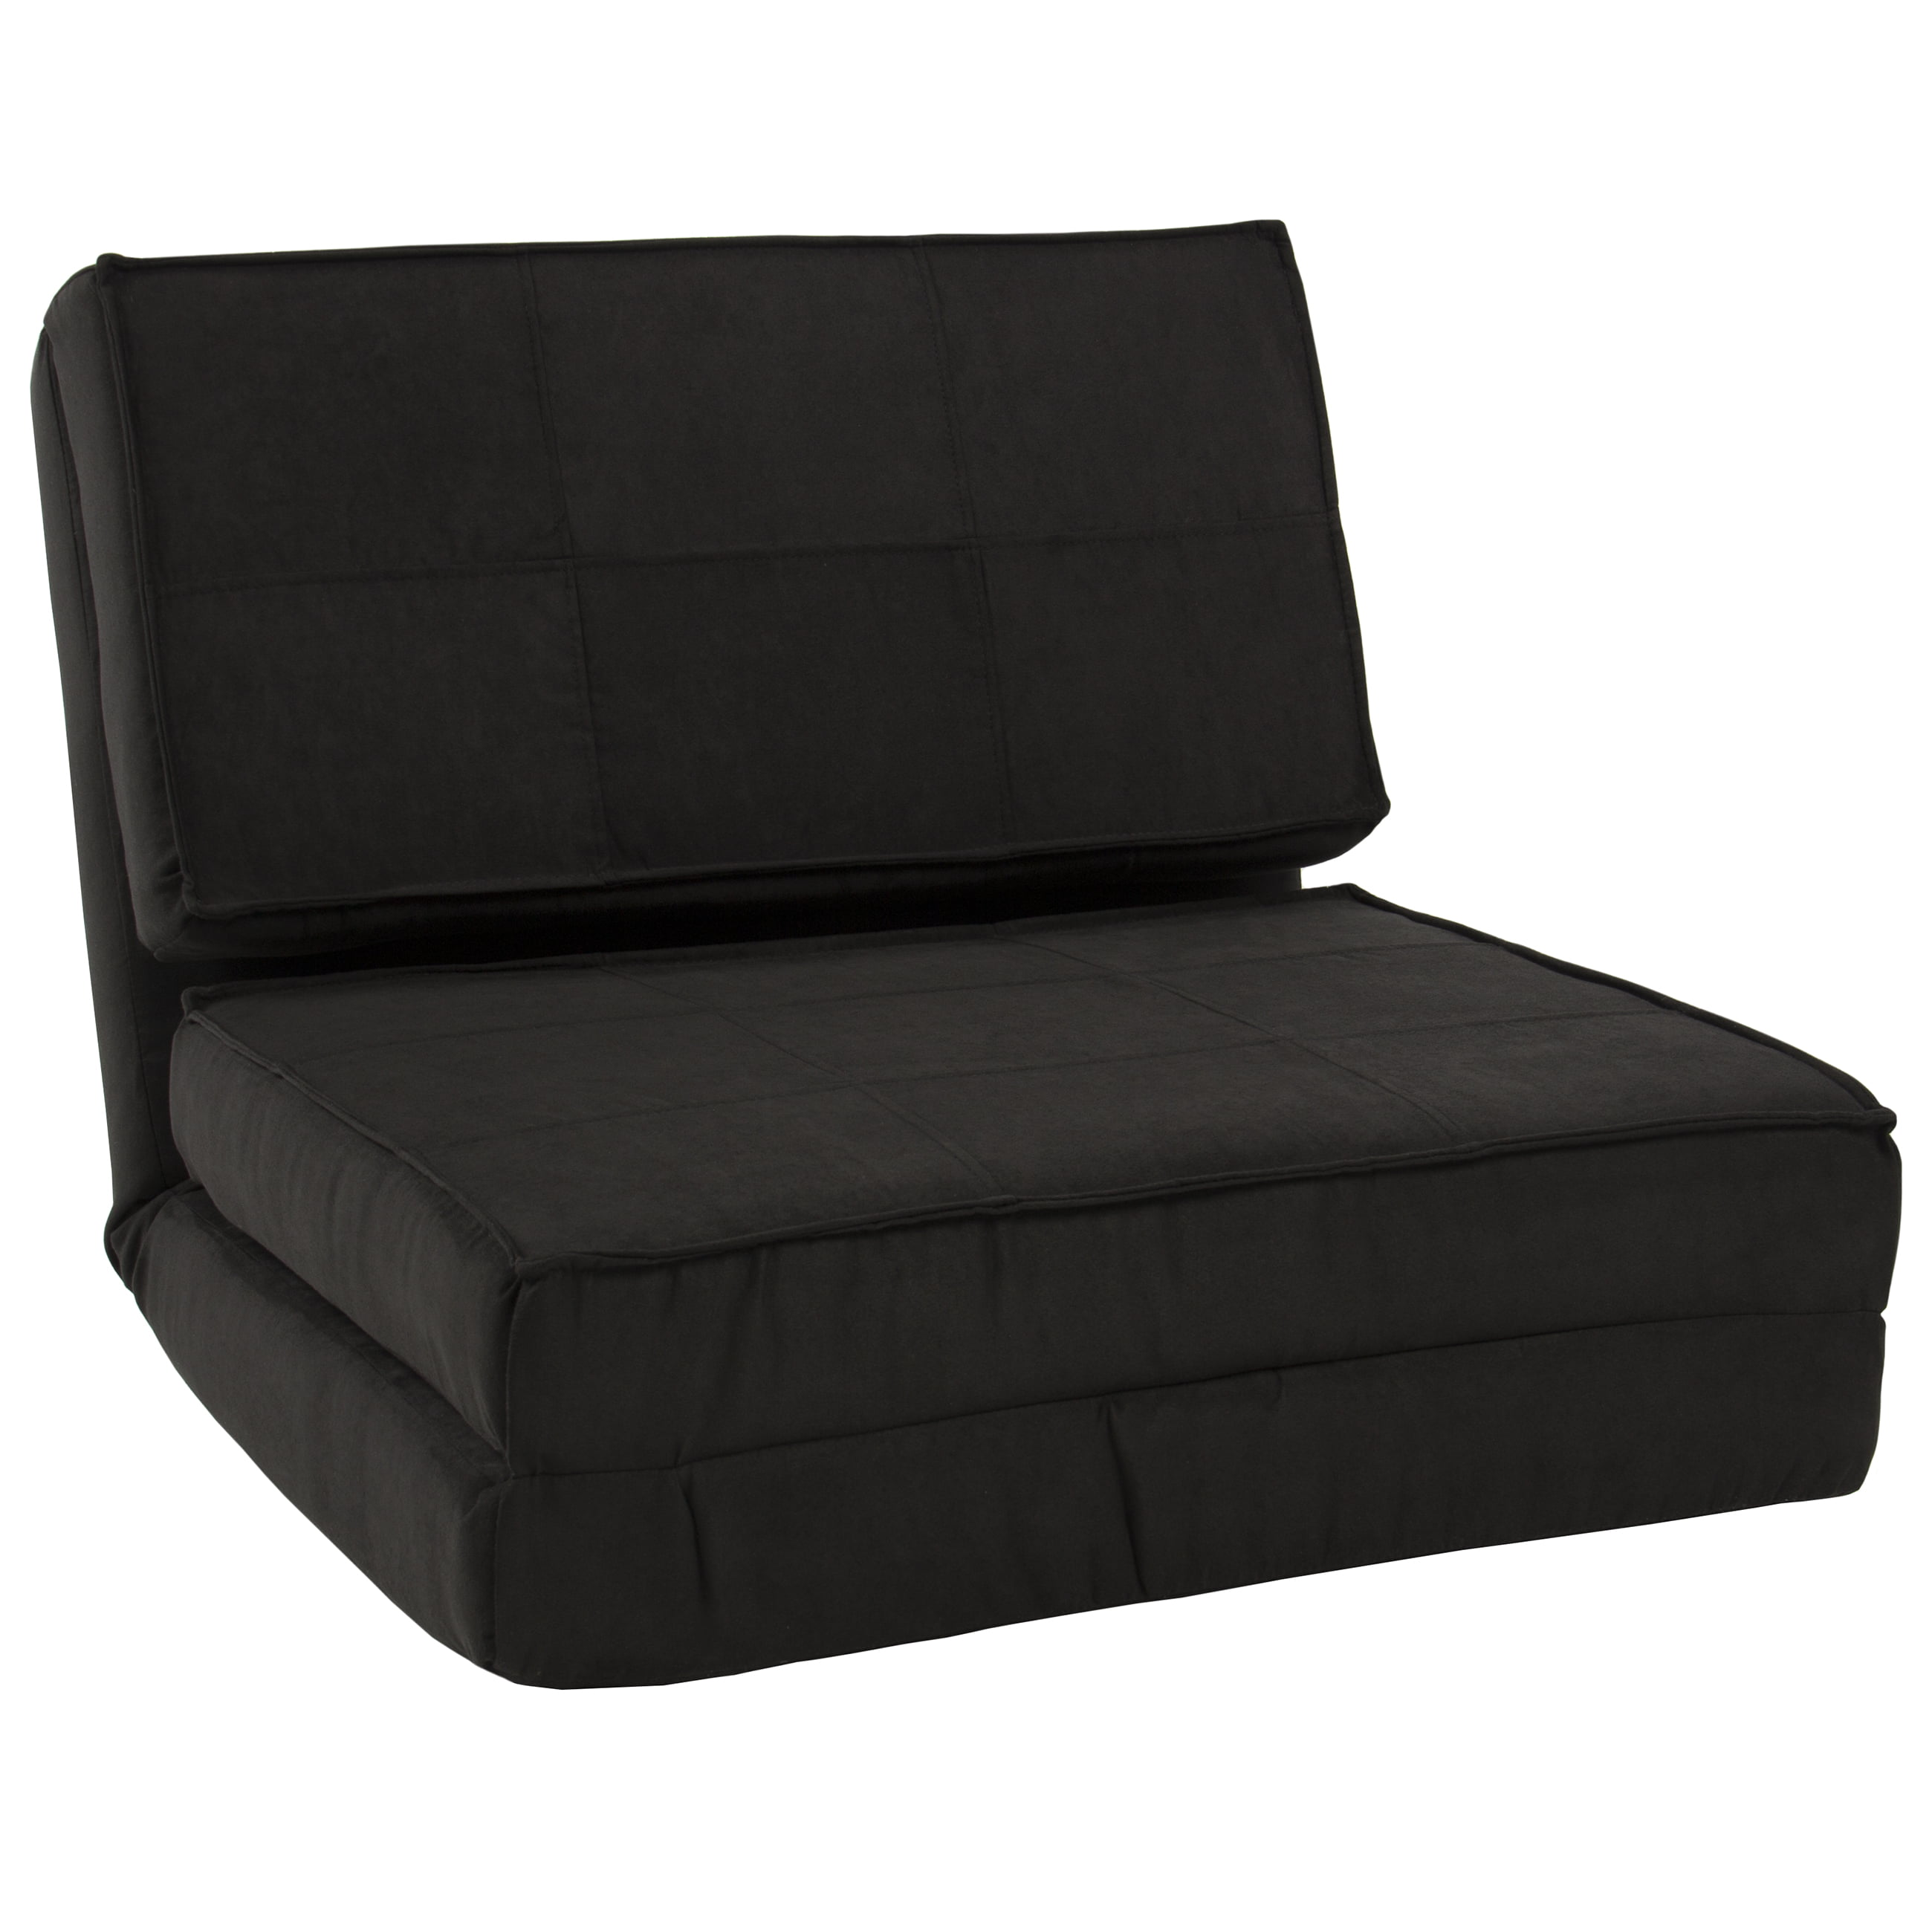 Best Choice Products Convertible Sleeper Chair Bed (Black)   Walmart.com